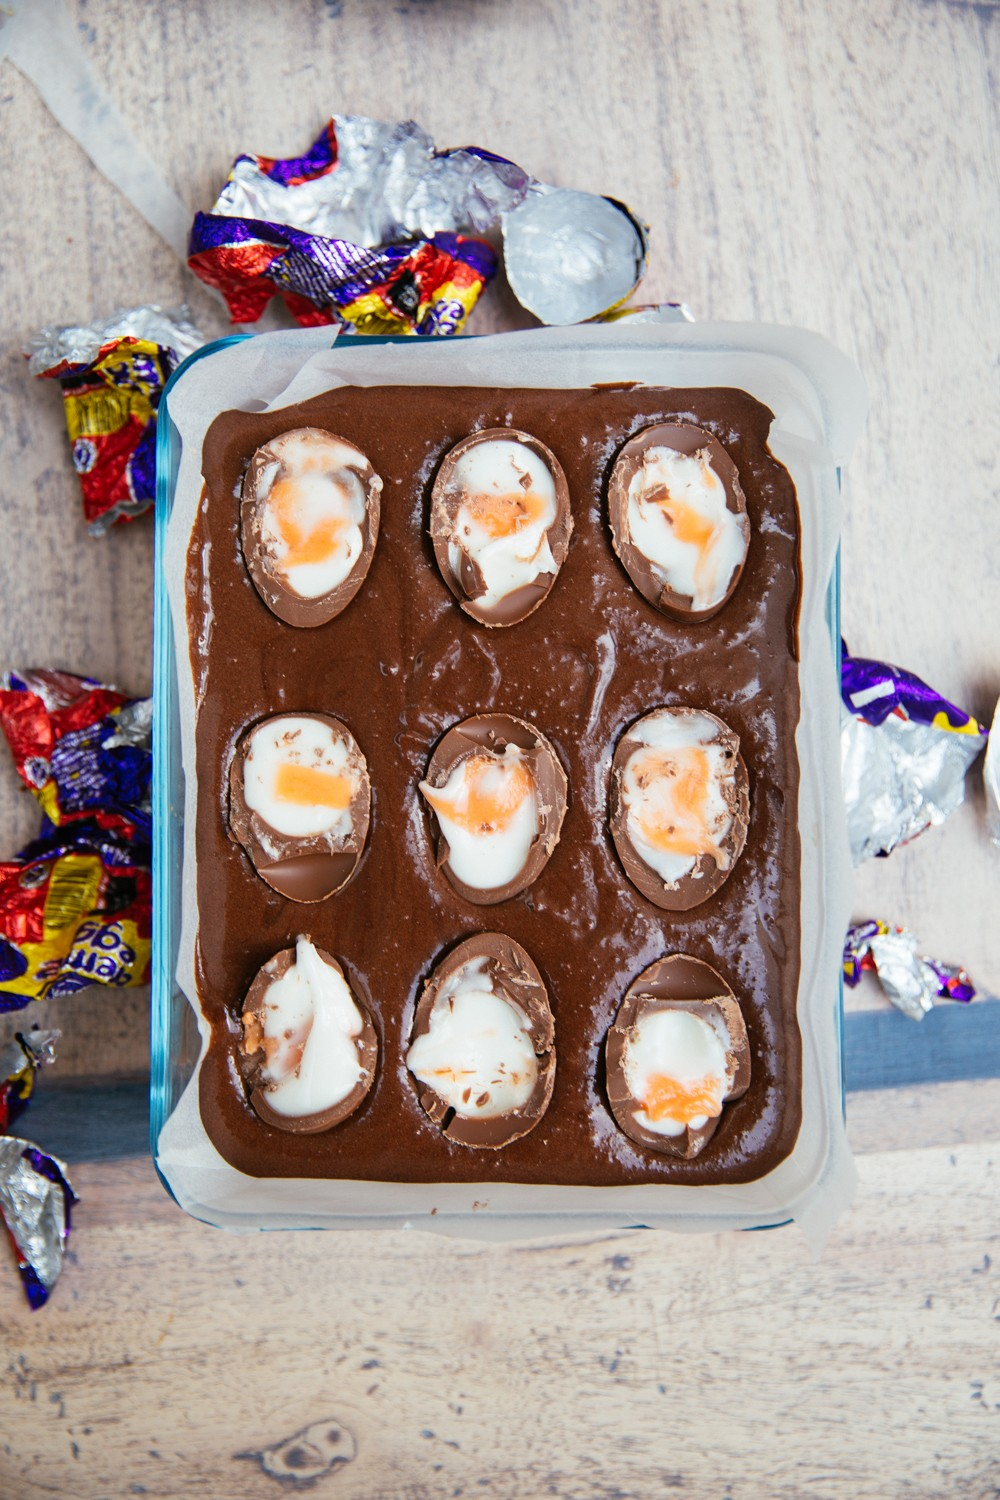 Cream Egg Slutty Brownies - Slutty Brownies just got even naughtier!